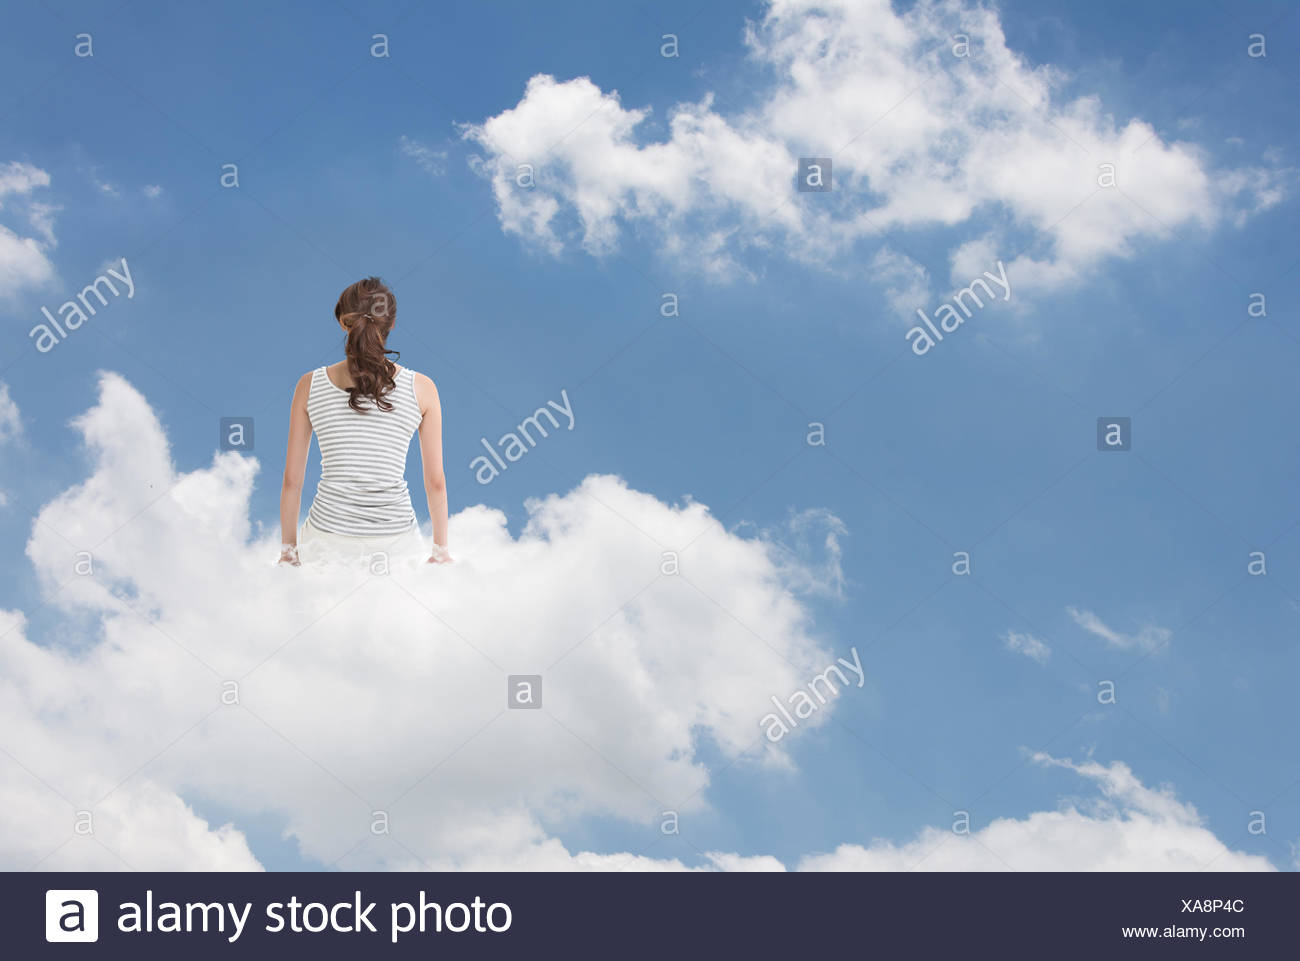 Brunet Woman Sit On Clouds Stock Photo Alamy If you are having trouble with page not found try using the search bar. https www alamy com brunet woman sit on clouds image281705436 html